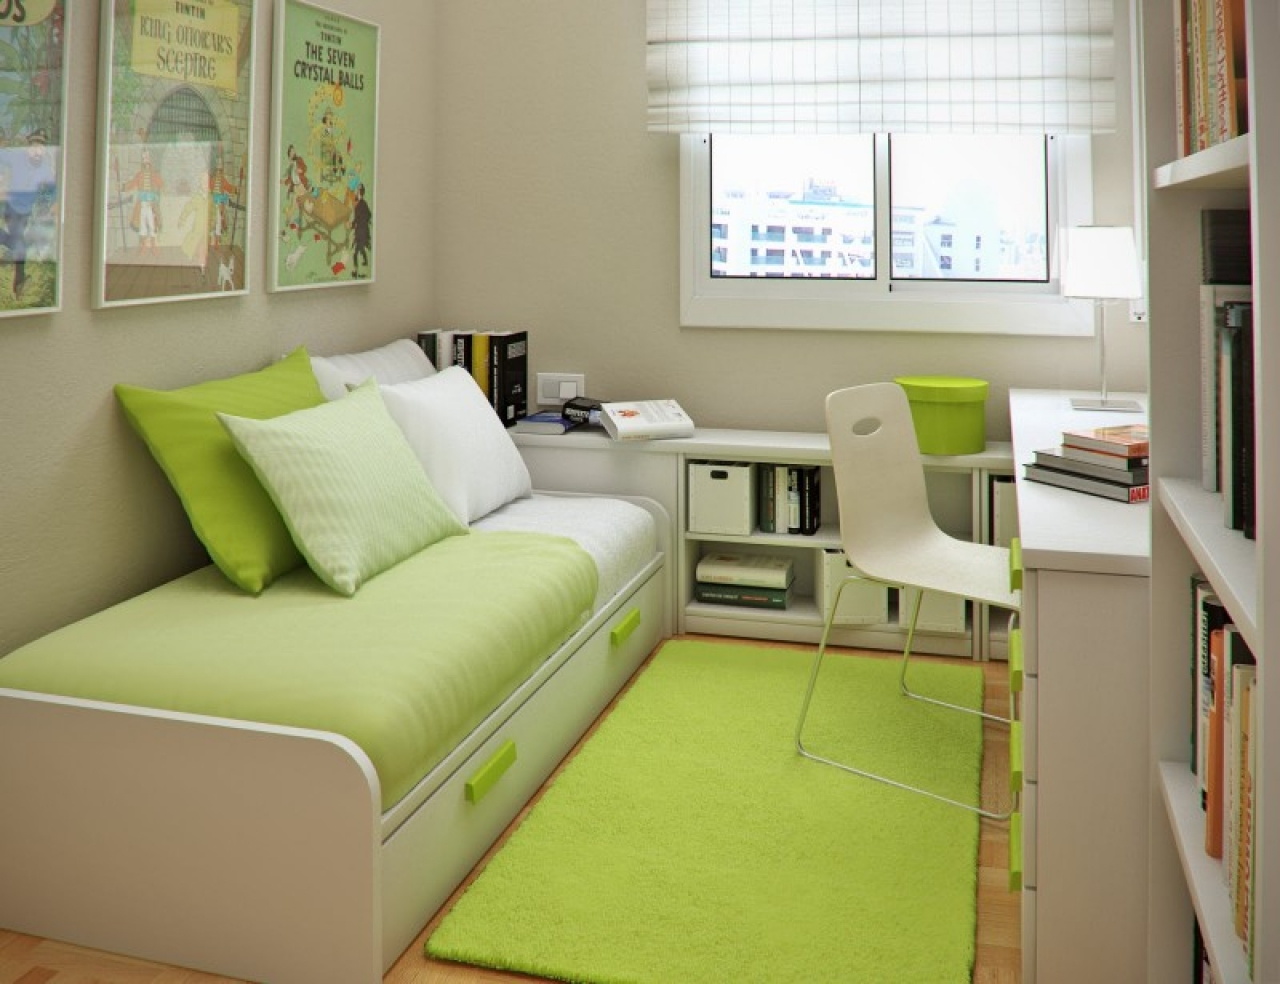 9 small bedroom ideas: how to make the most out of the space you have